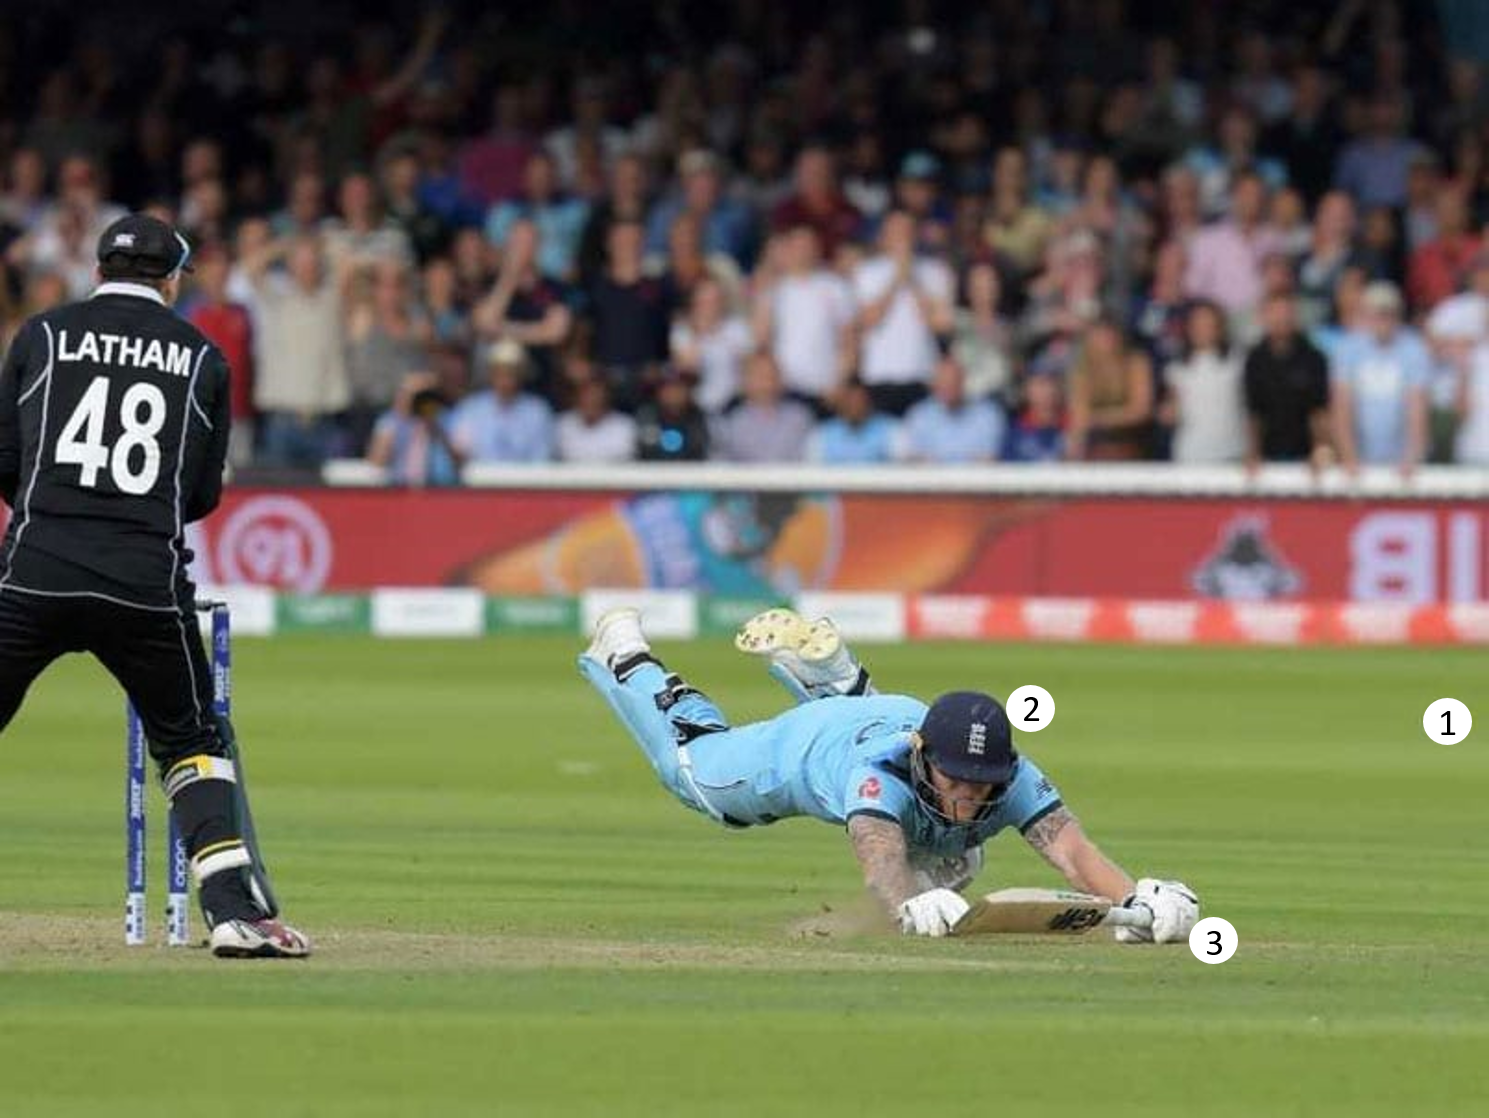 Image for 5. Spot the ball